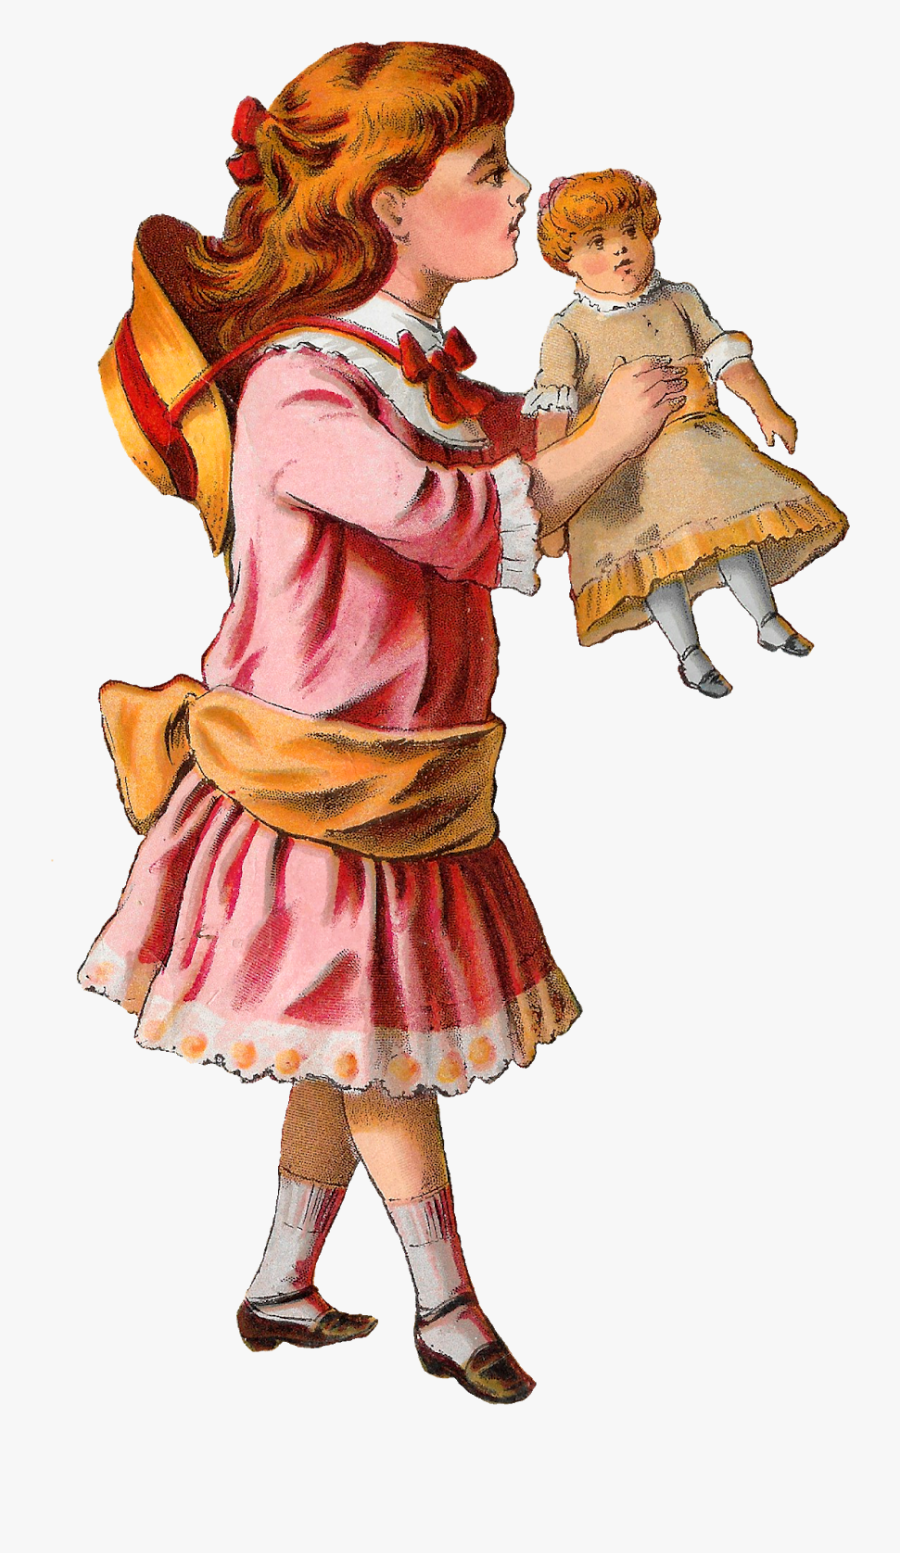 Girl Victorian Toy Doll Clipart Image Digital Download - Girl Holding A Doll Art, Transparent Clipart